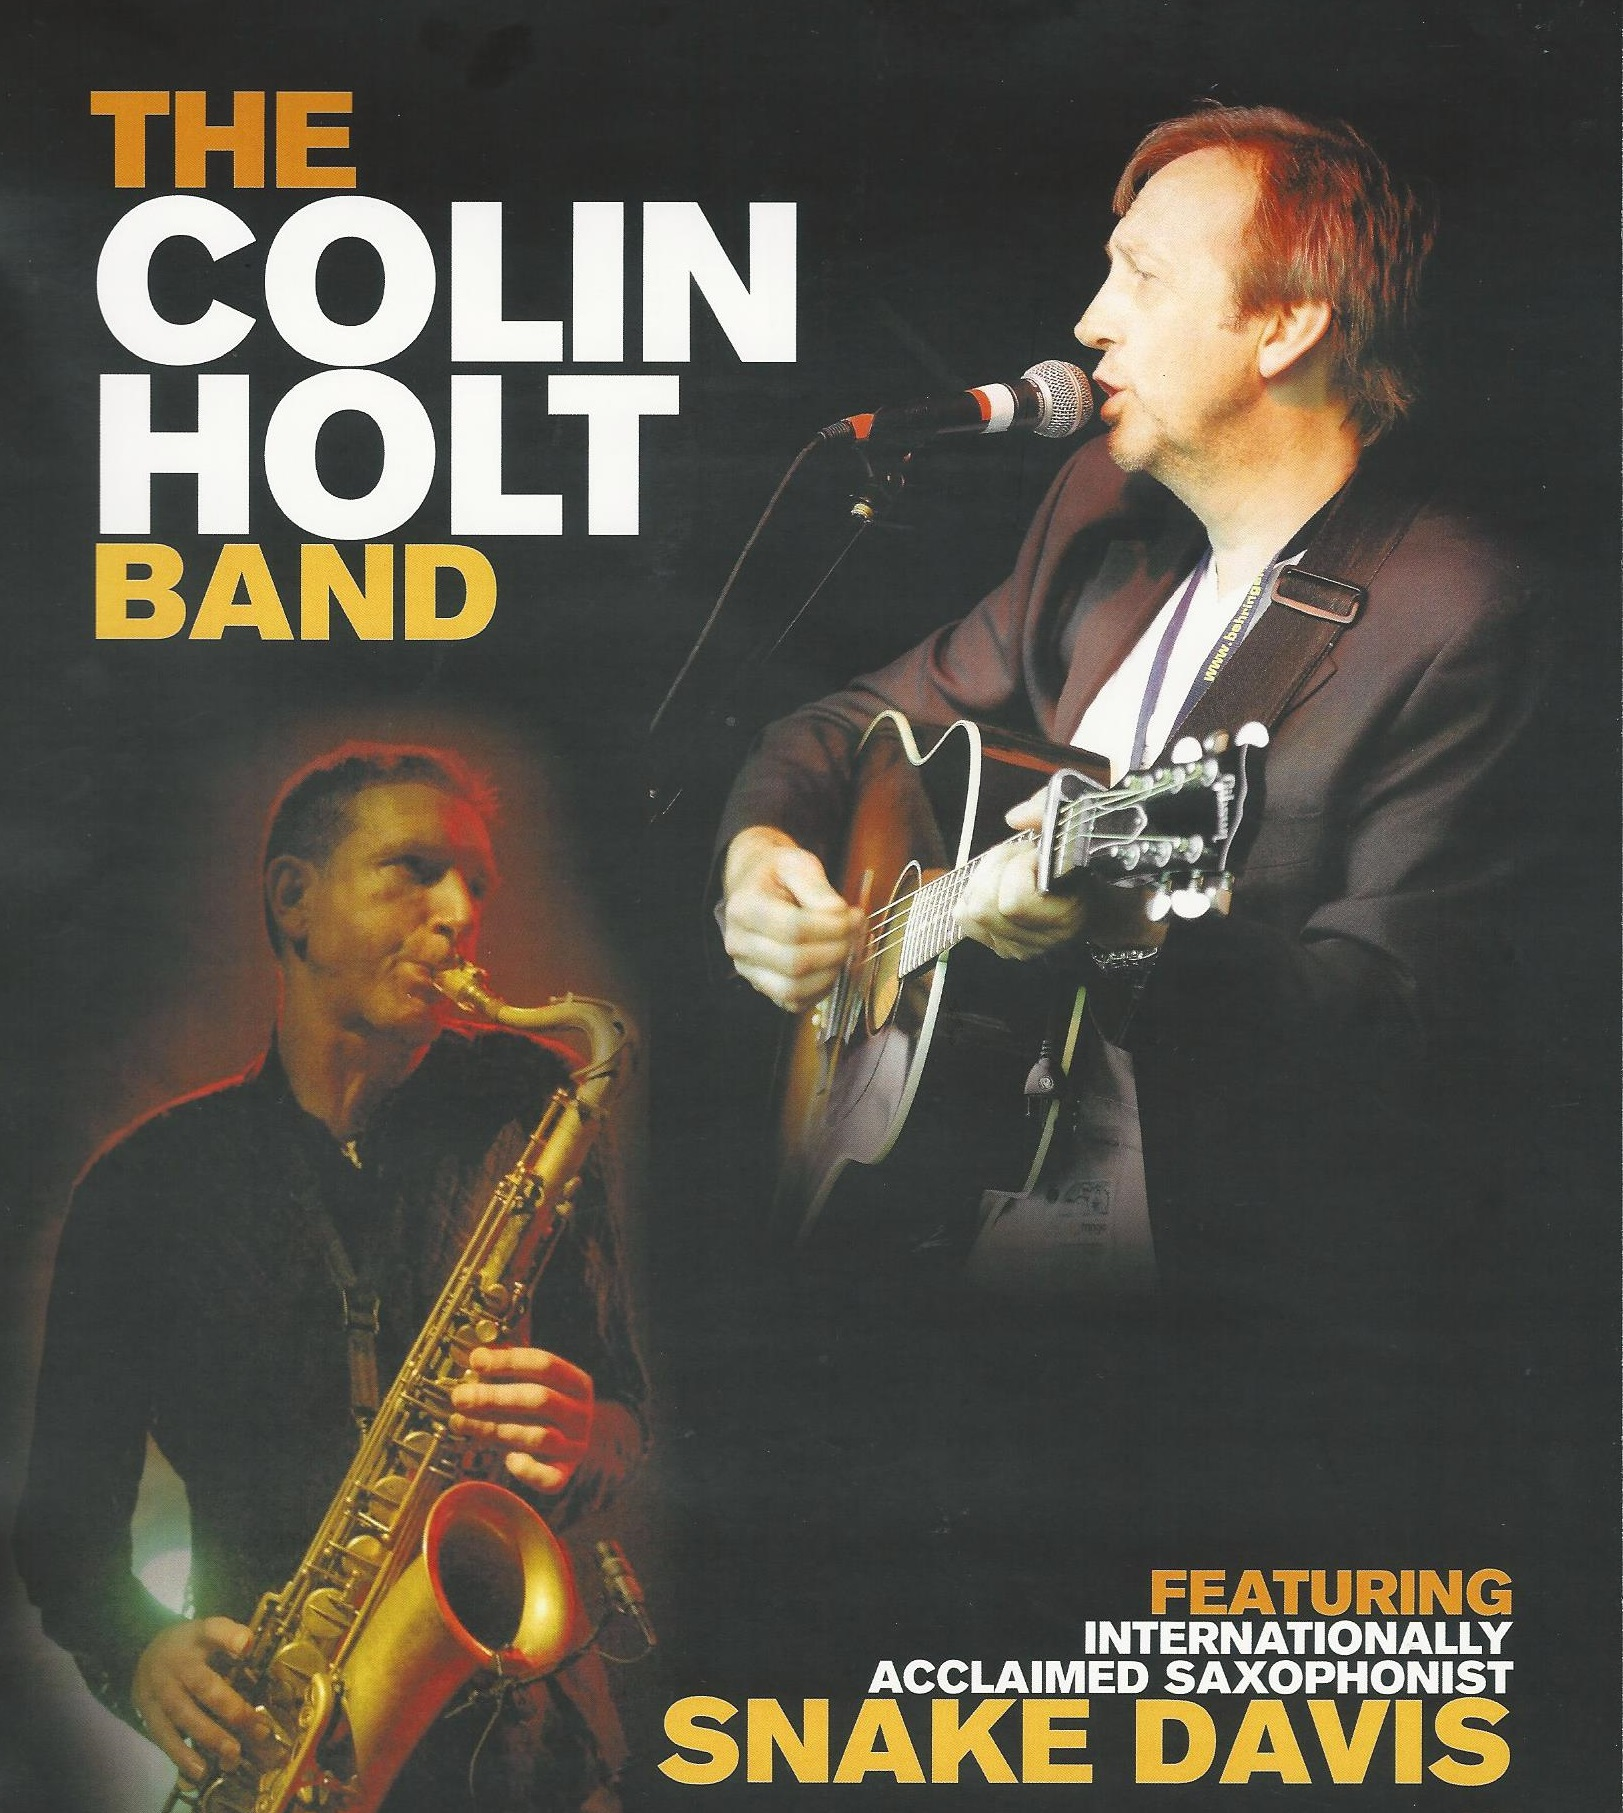 The Colin Holt Band & Snake Davis